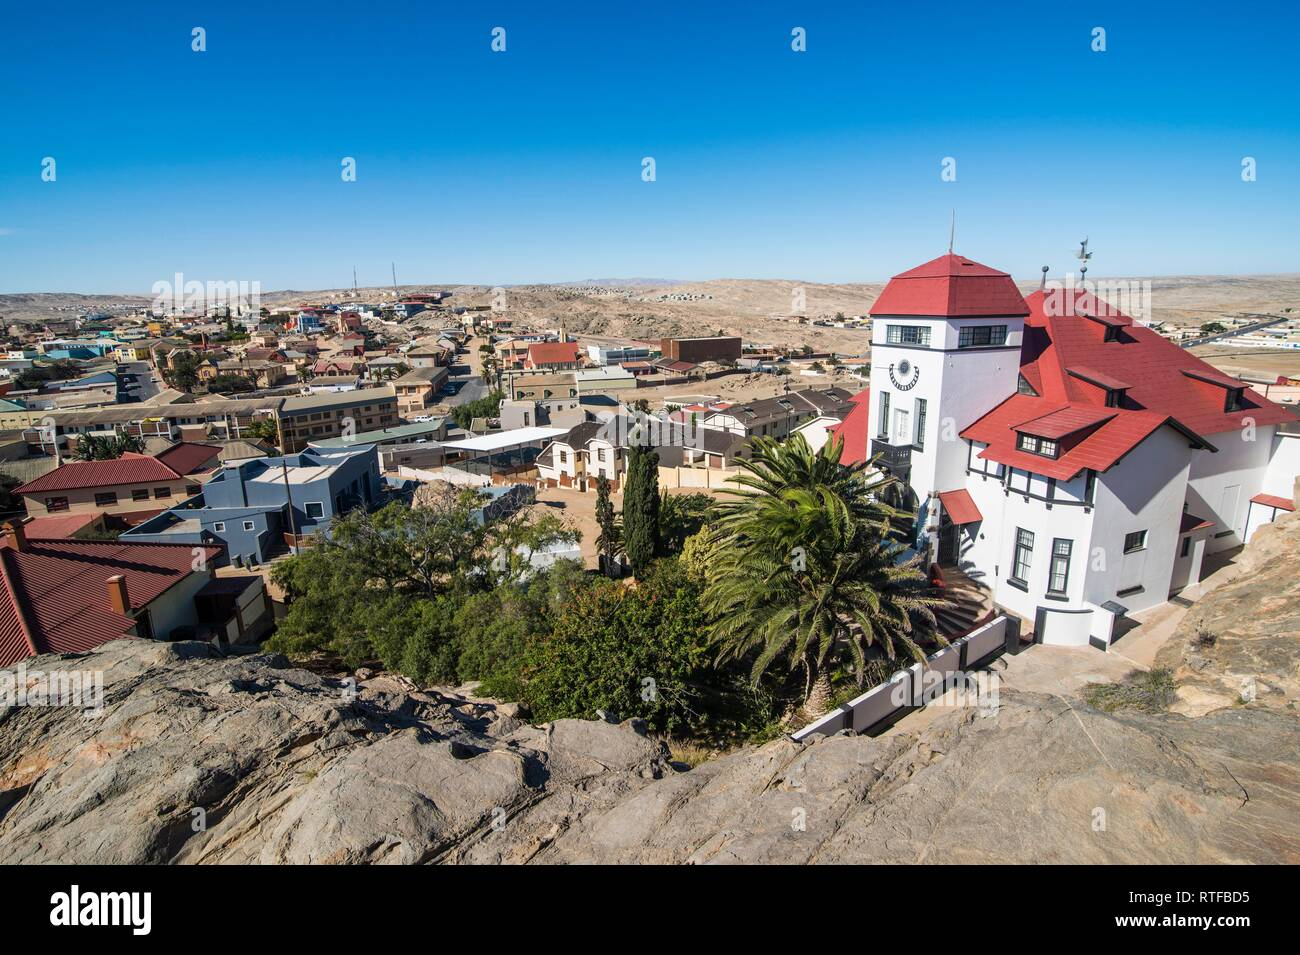 Overlook over Lüderitz, Namibia - Stock Image